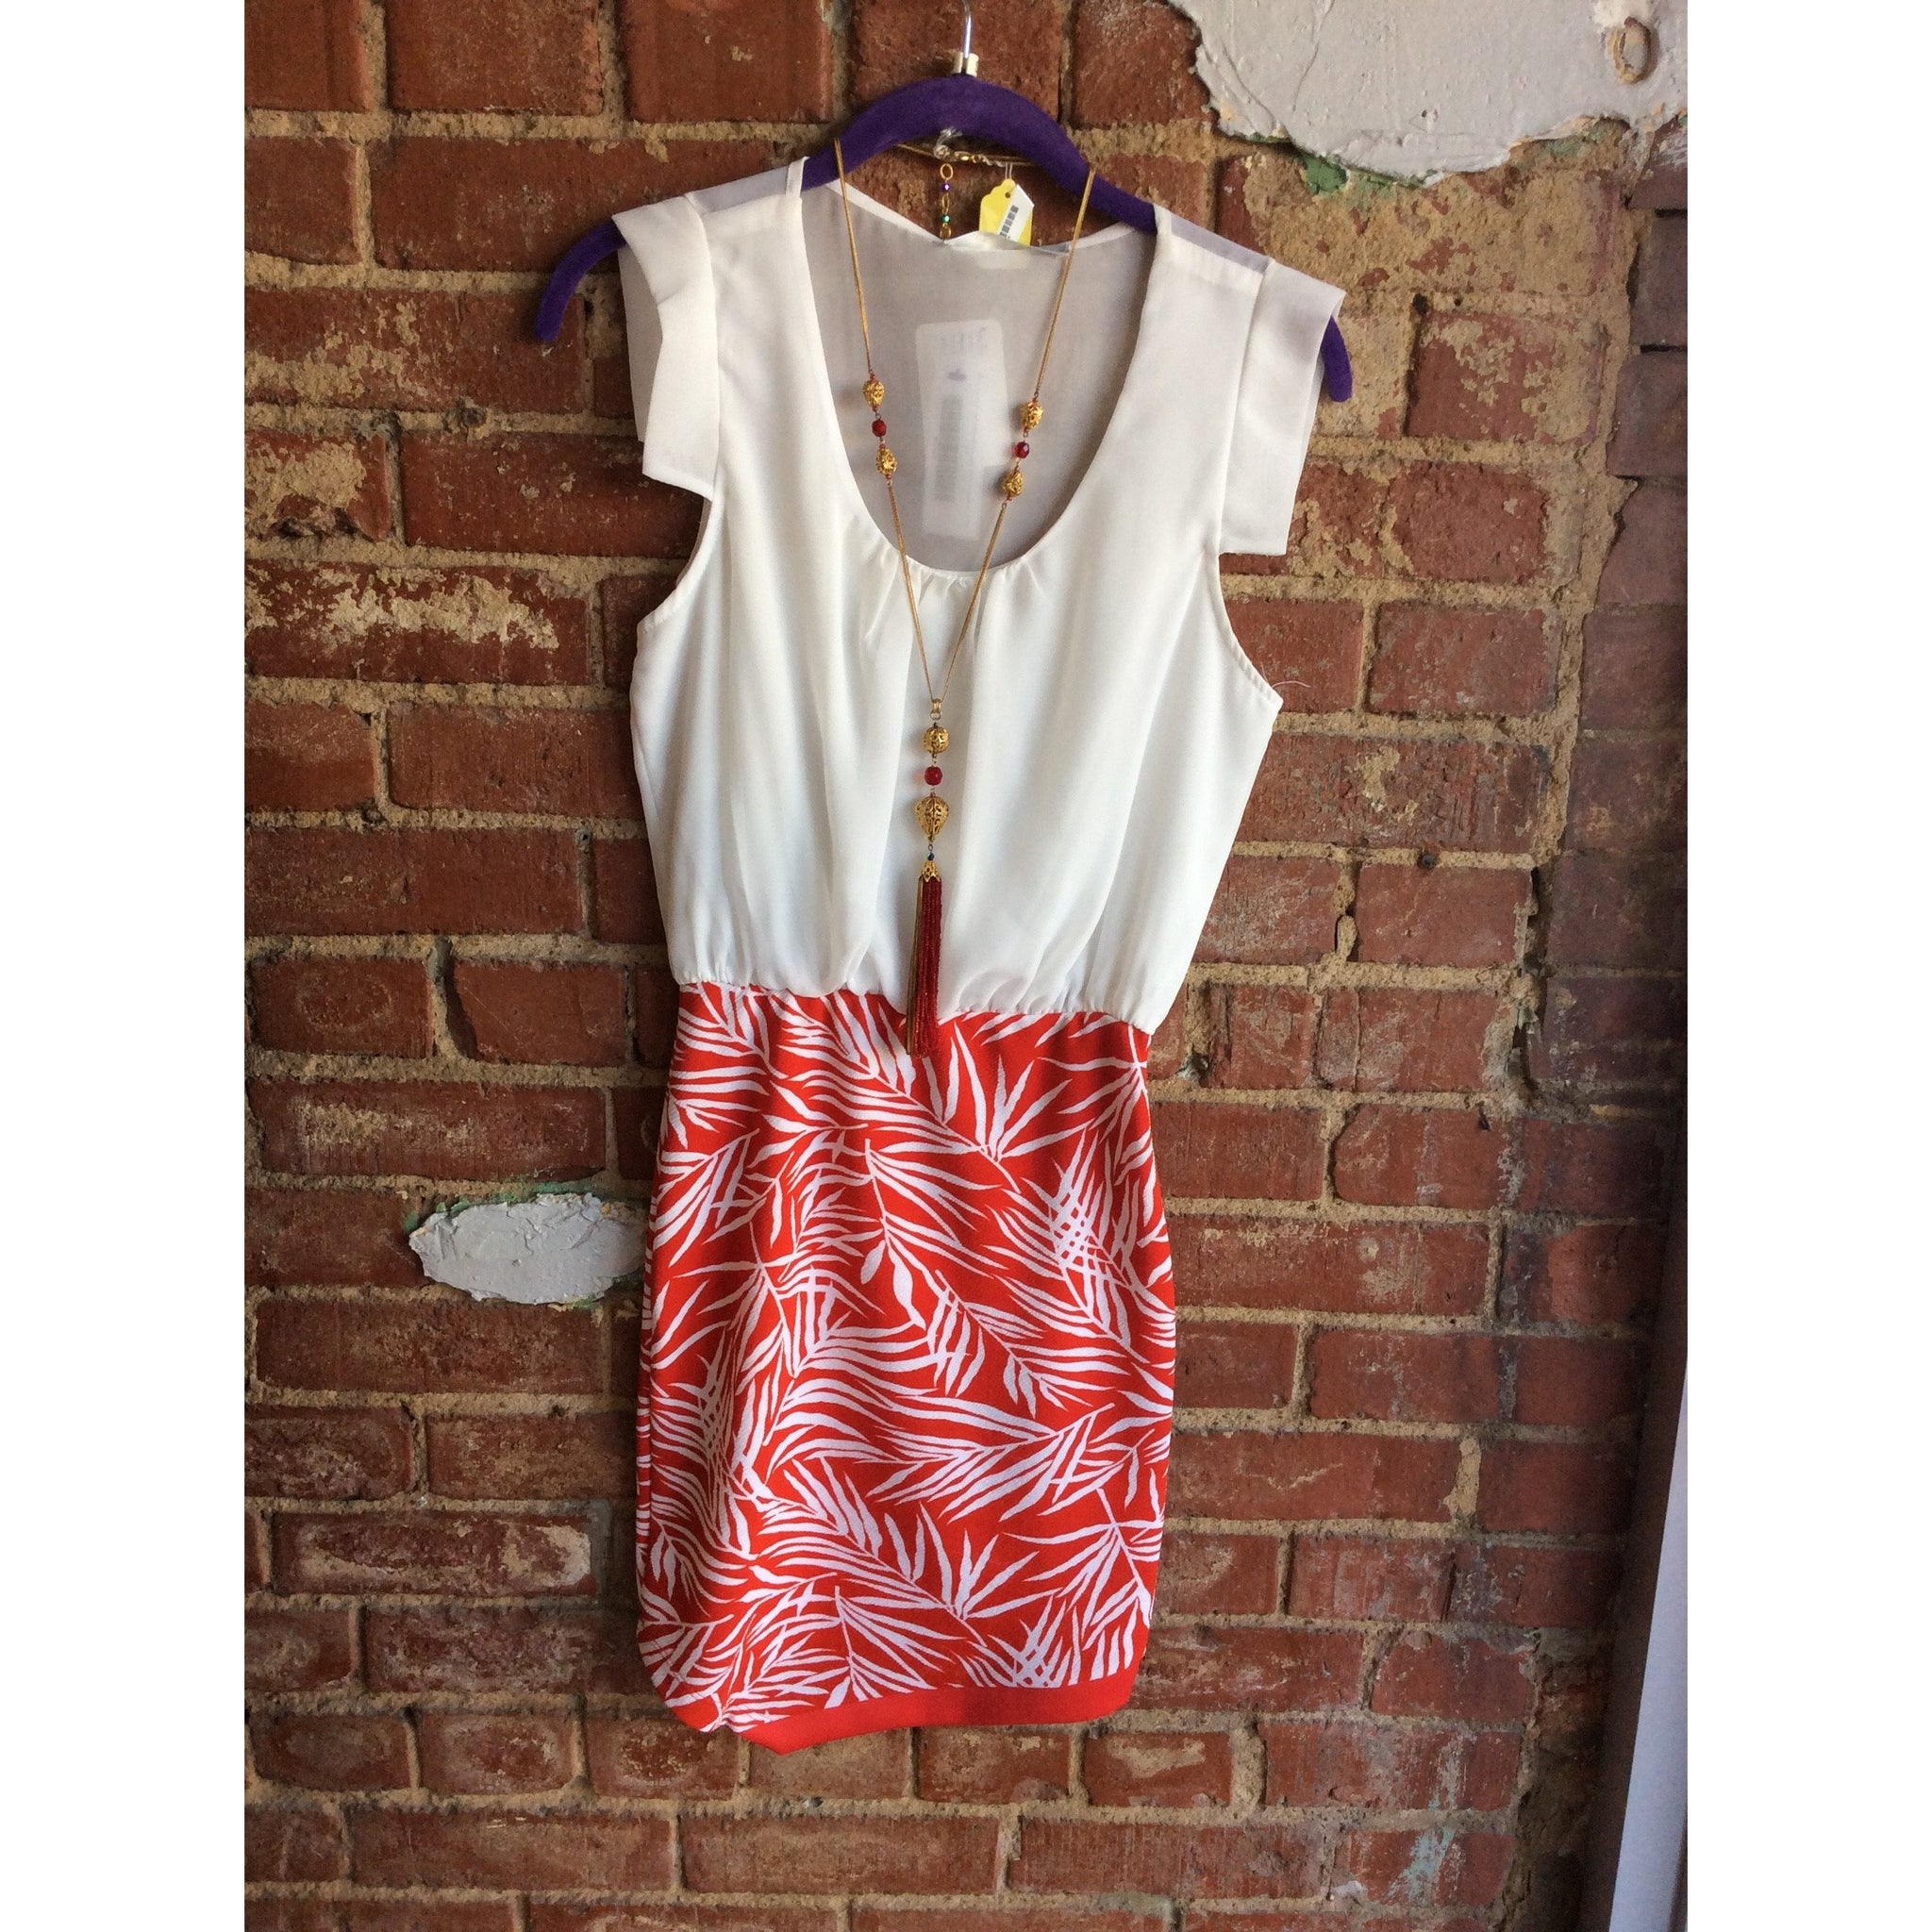 White Top Red Leaf Bottom Dress